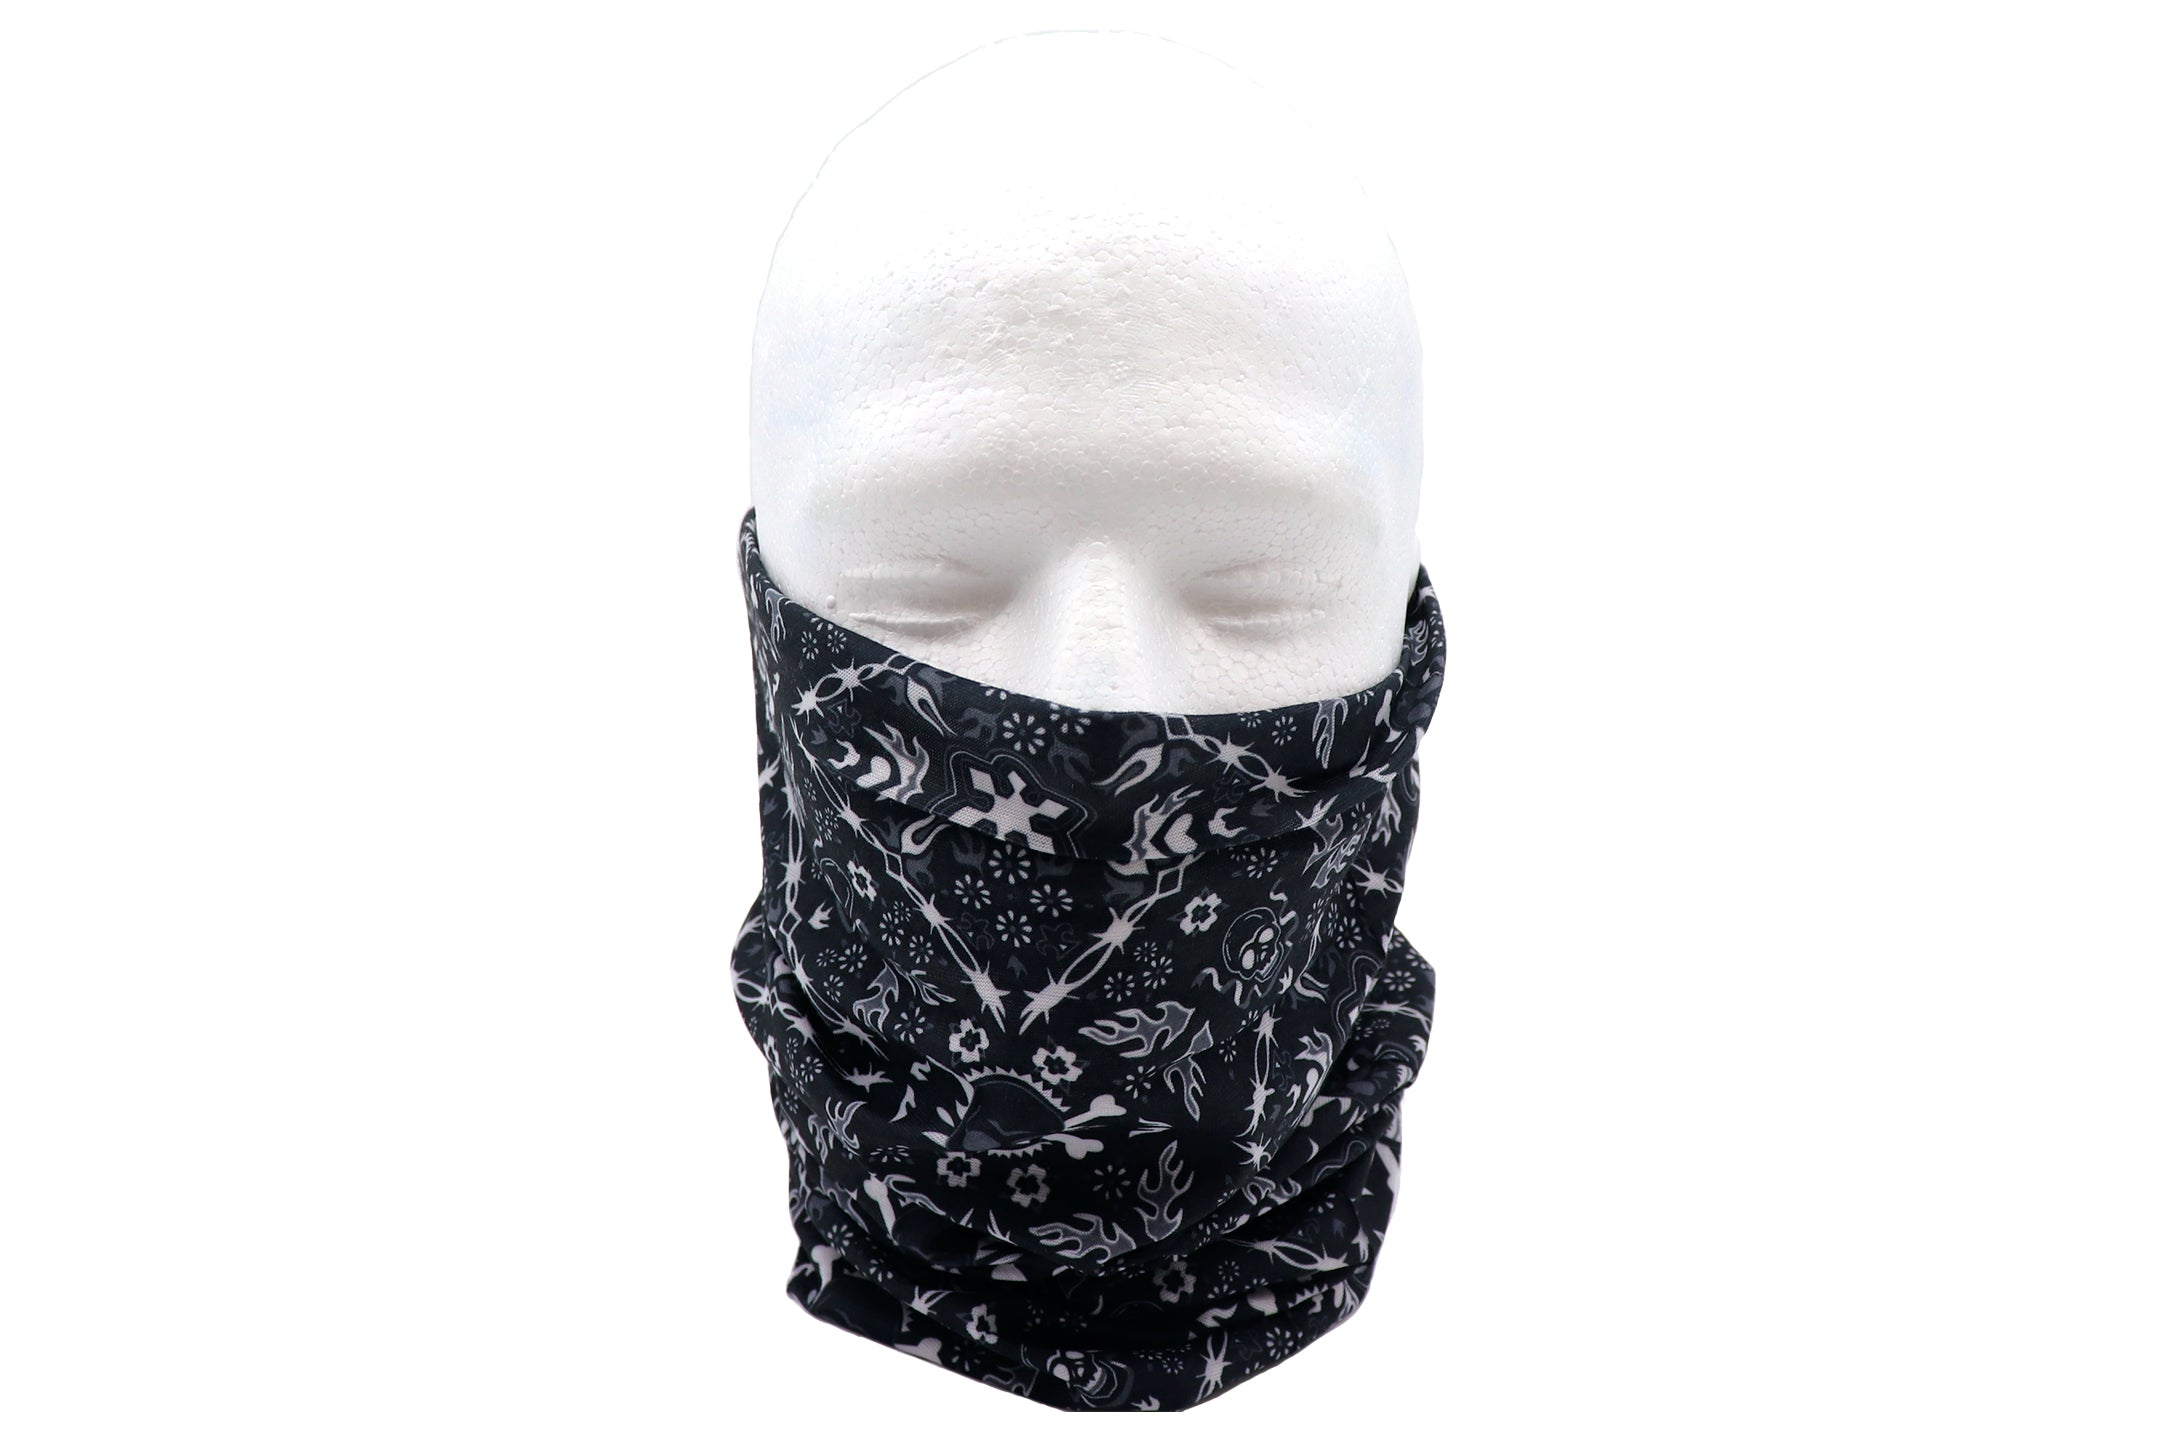 Black gaiter skulls and fire arrows. Bandana black sleeve for head wear, neck, wrist, accessory and face covering mask. White pattern of skulls and arrow figures over black gaiter.